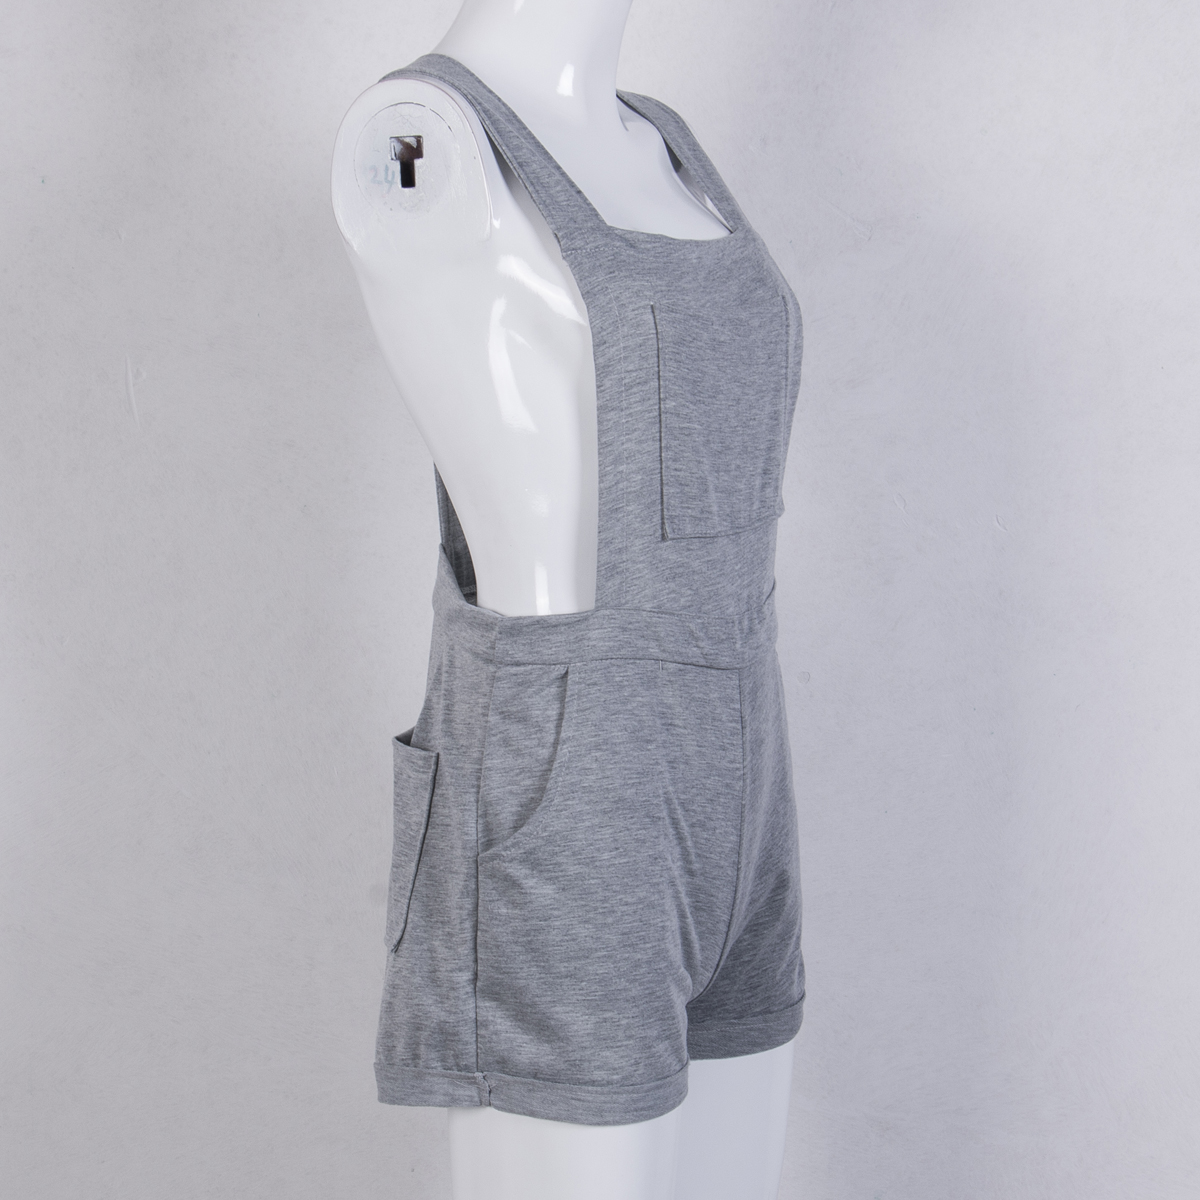 Women Clubwear Solid Playsuit New Ladies Gray Pocket Party Plain Jumpsuit Rompers Trousers Woman Clothing